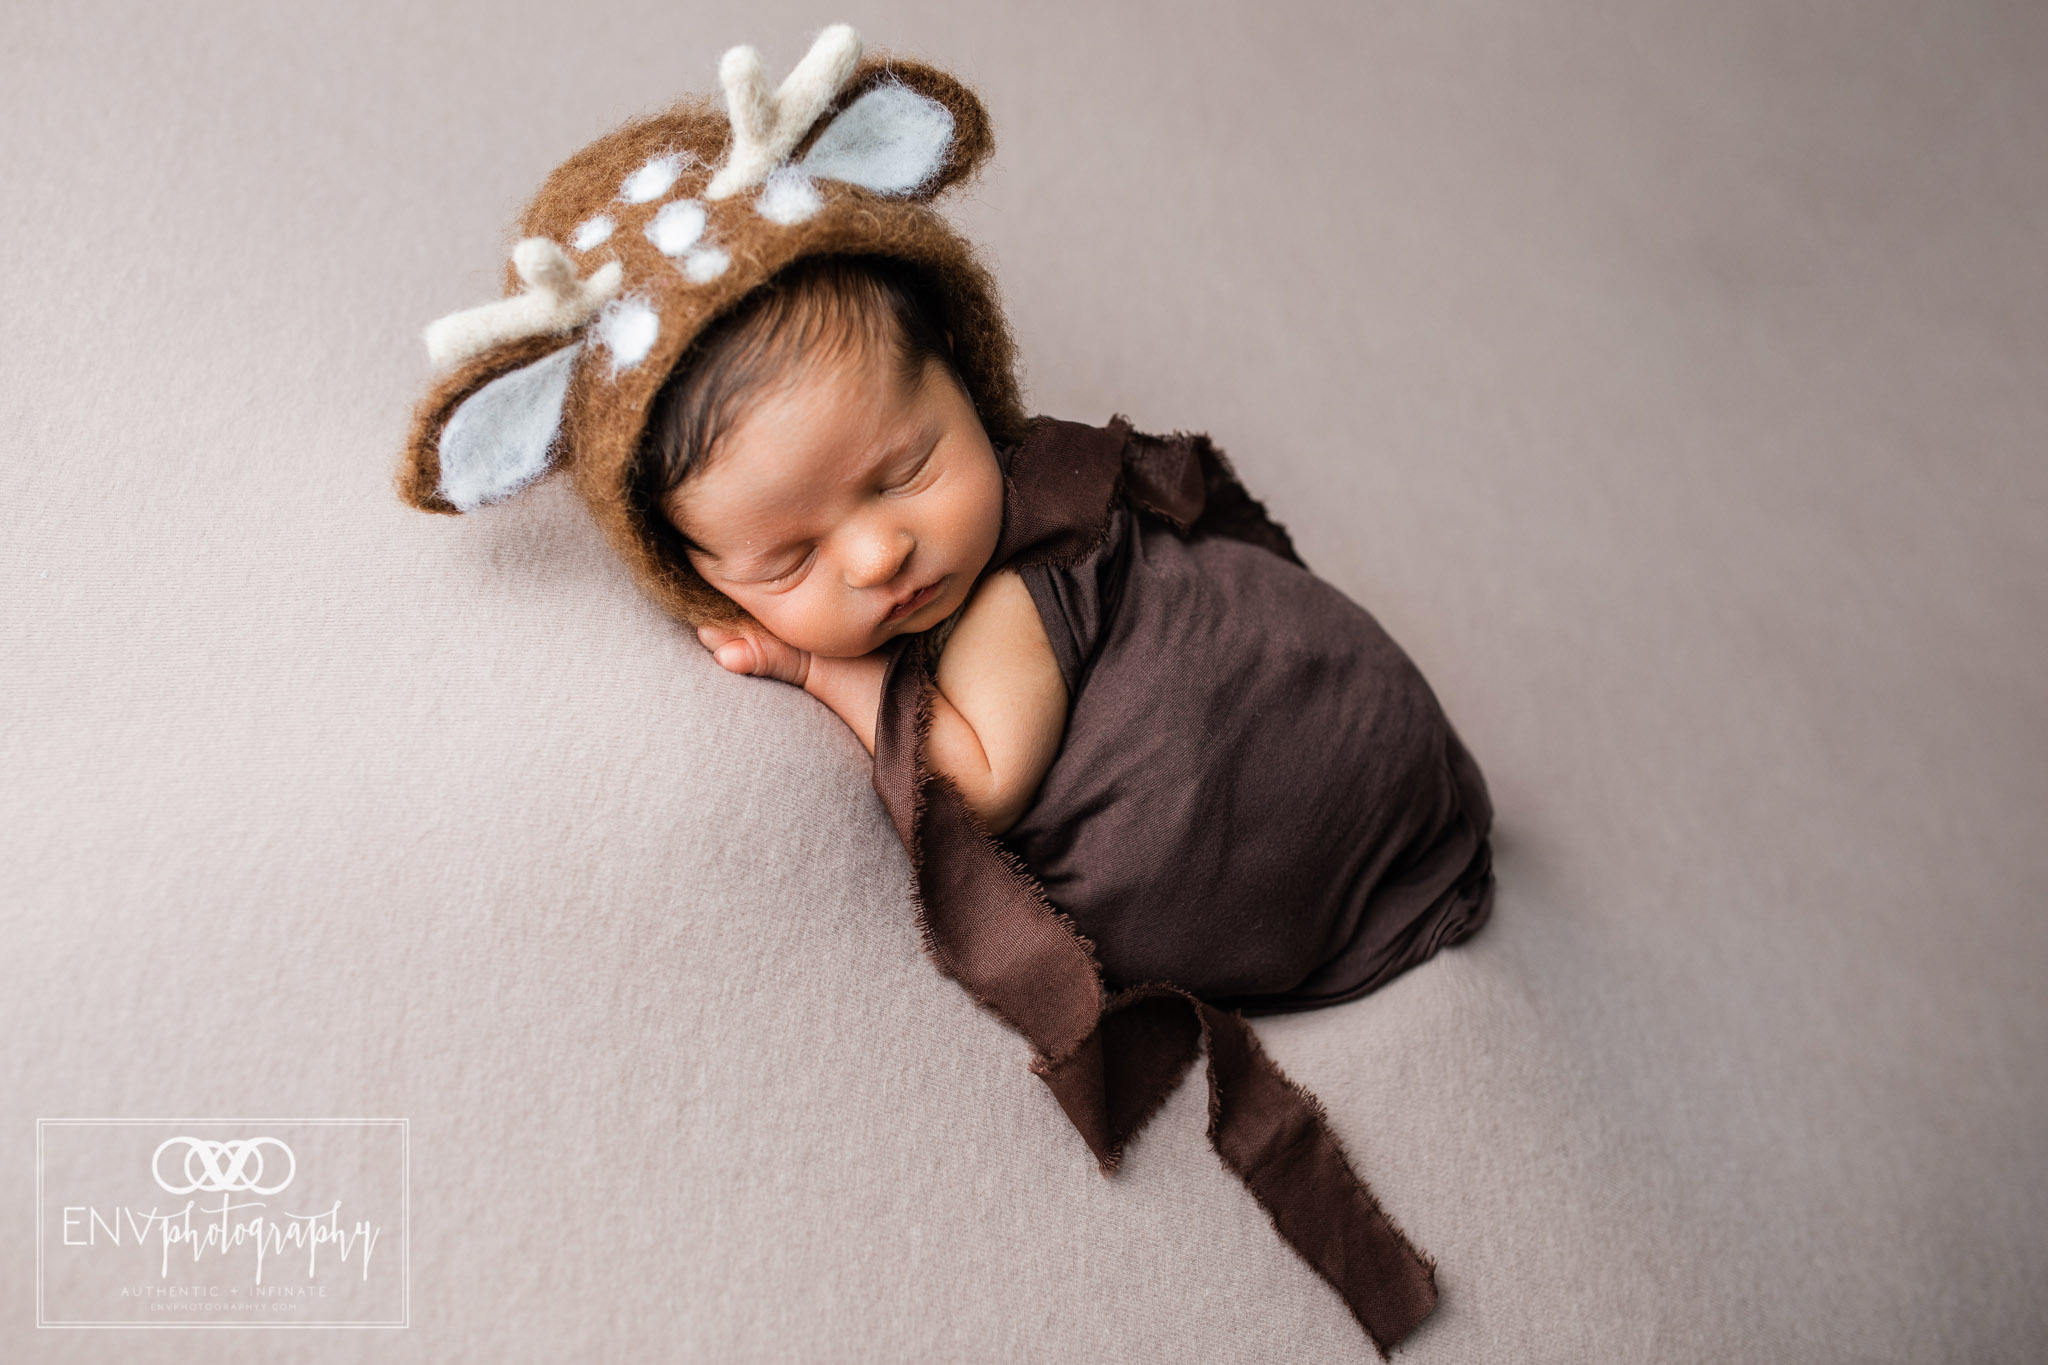 columbus mount vernon mansfield ohio newborn photographer (7).jpg